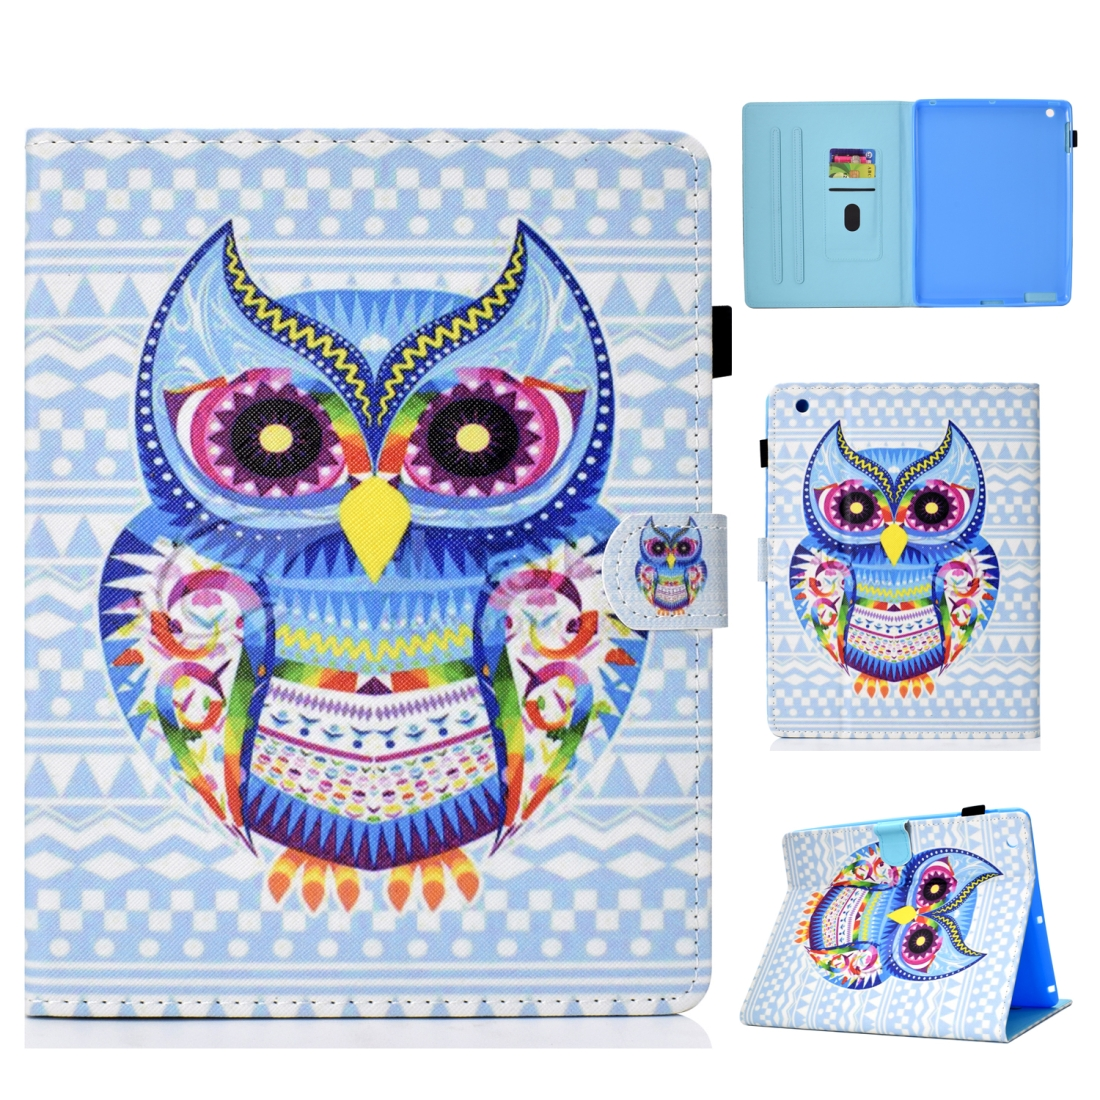 iPad 2 Case Fits iPad 2, 3, With Artistic Stitched Leather Case With Sleeves (Artistic Owl)